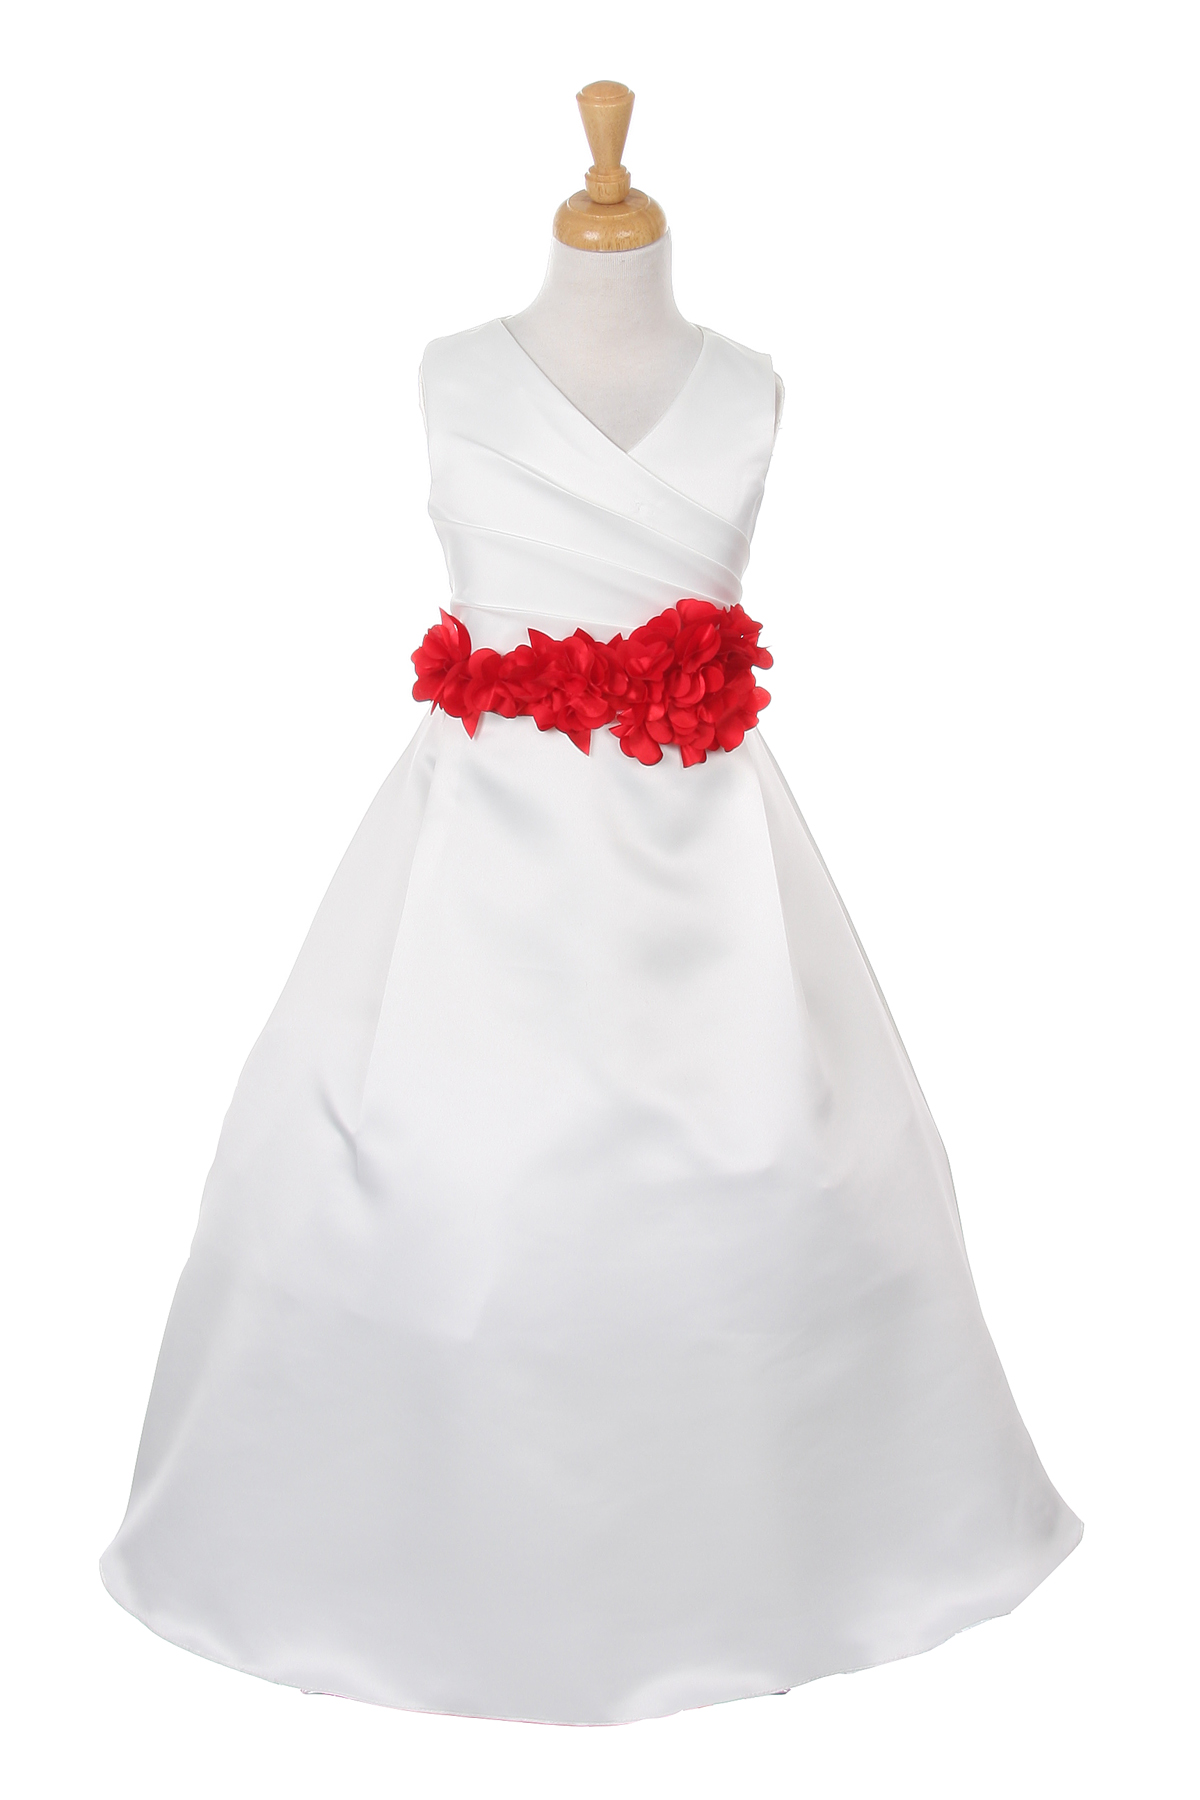 ivory dress with red flower sash